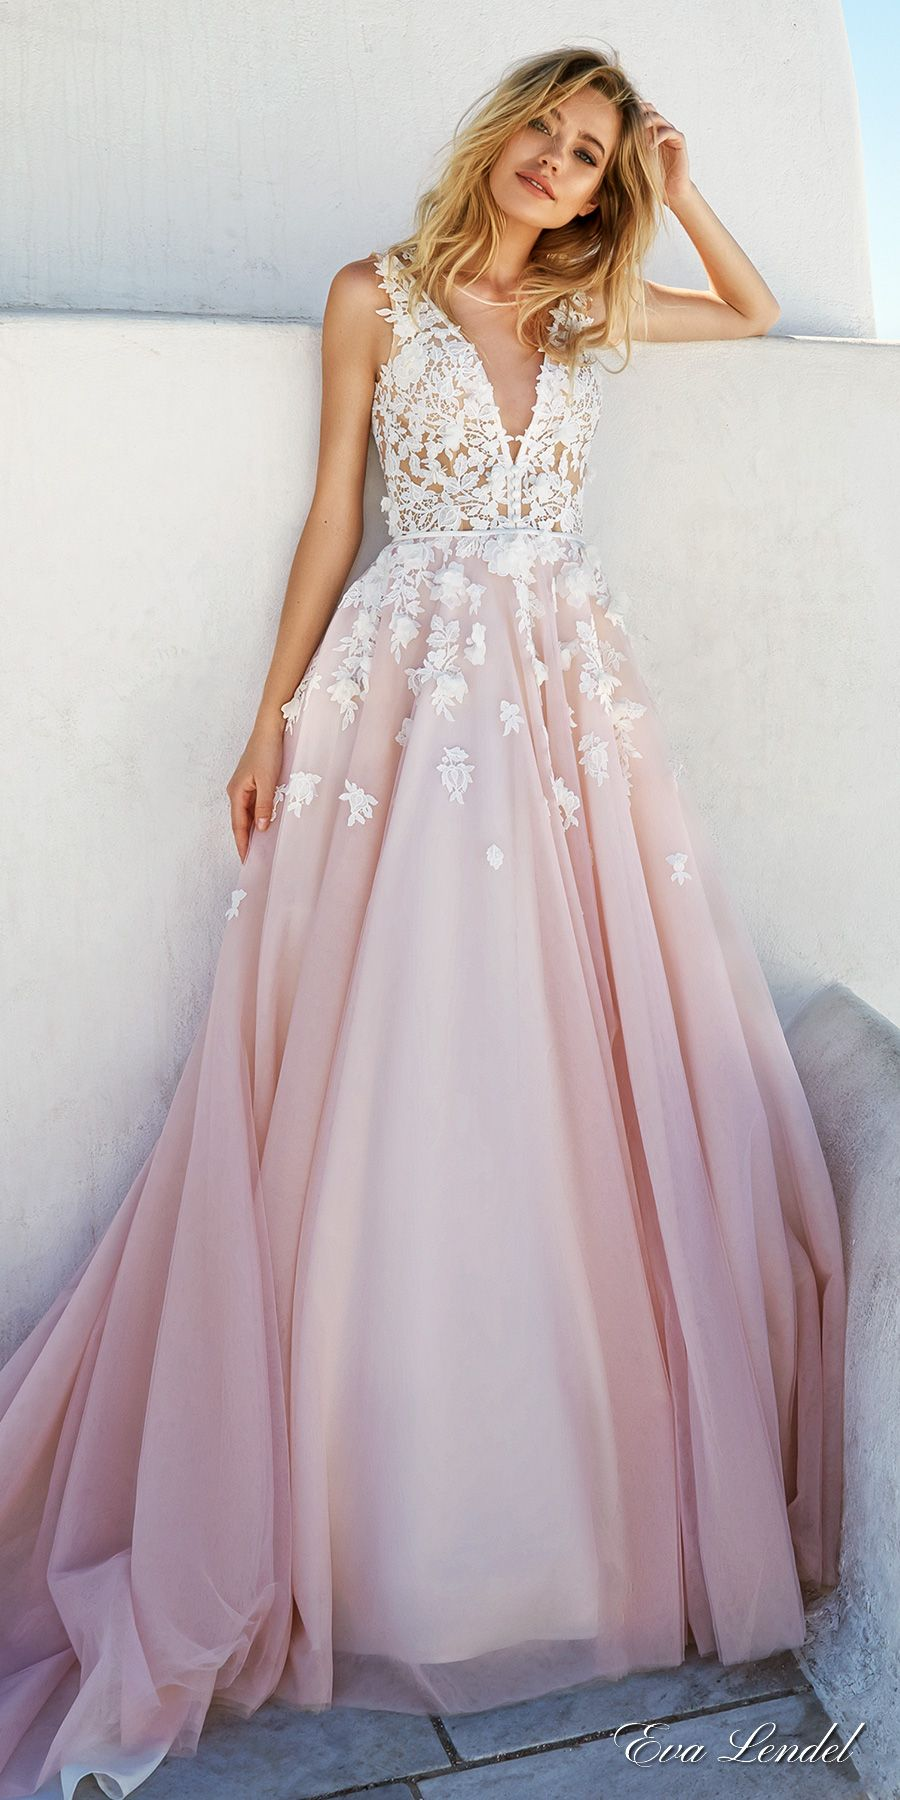 Vestido Para Festa De Noivado Eva Lendel 2017 Bridal Sleeves Deep V Neck Heavily Embellished Bodice Pretty Pink Color A Line Wedding Dress Keyhole